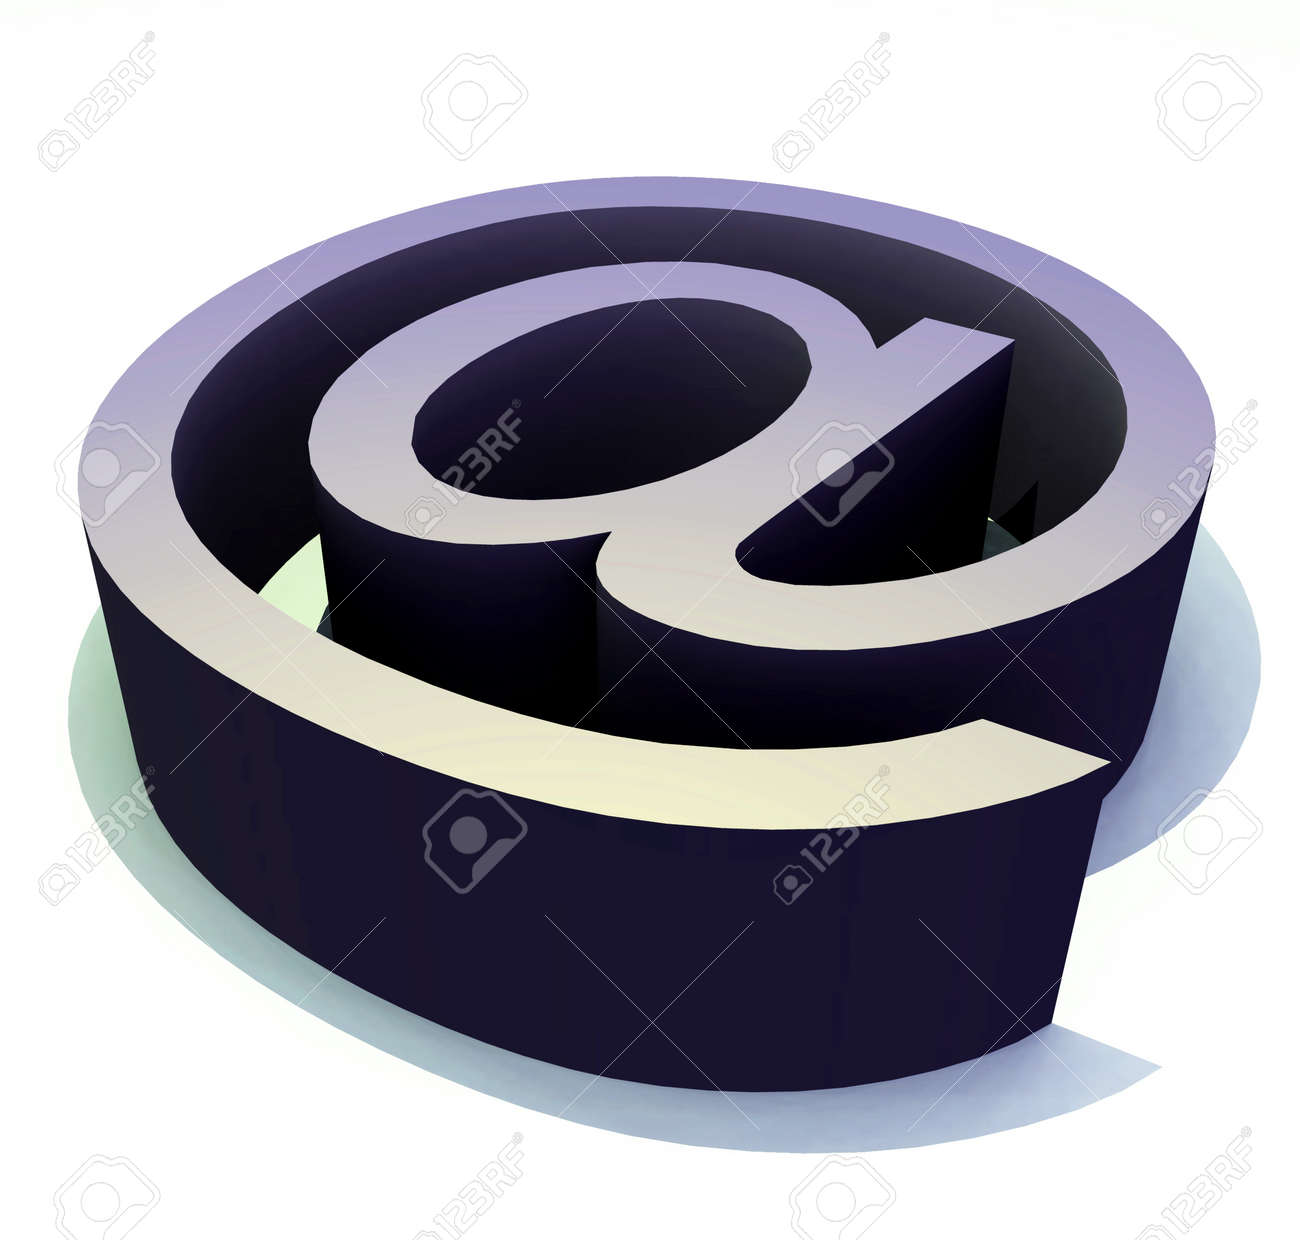 The Symbol That Is Used In Email Addresss Stock Photo Picture And